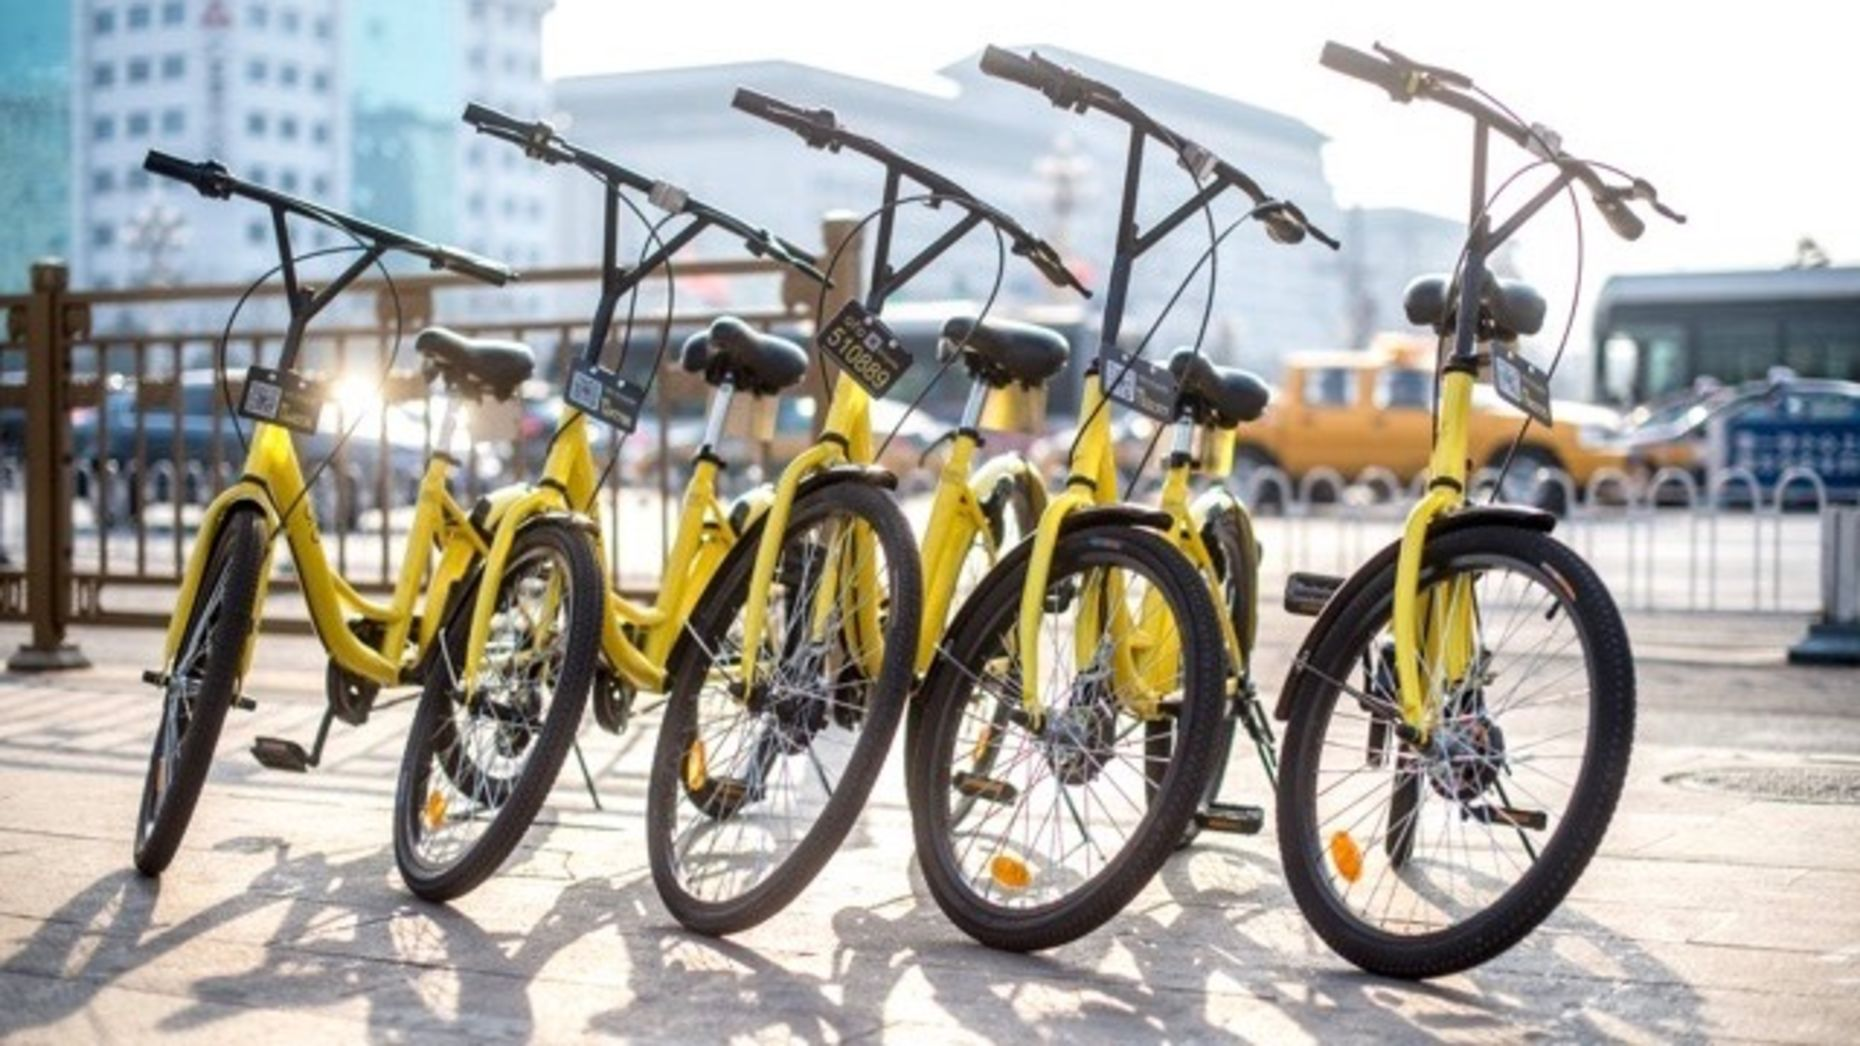 Ofo bicycles available for rent. Photo by Ofo.